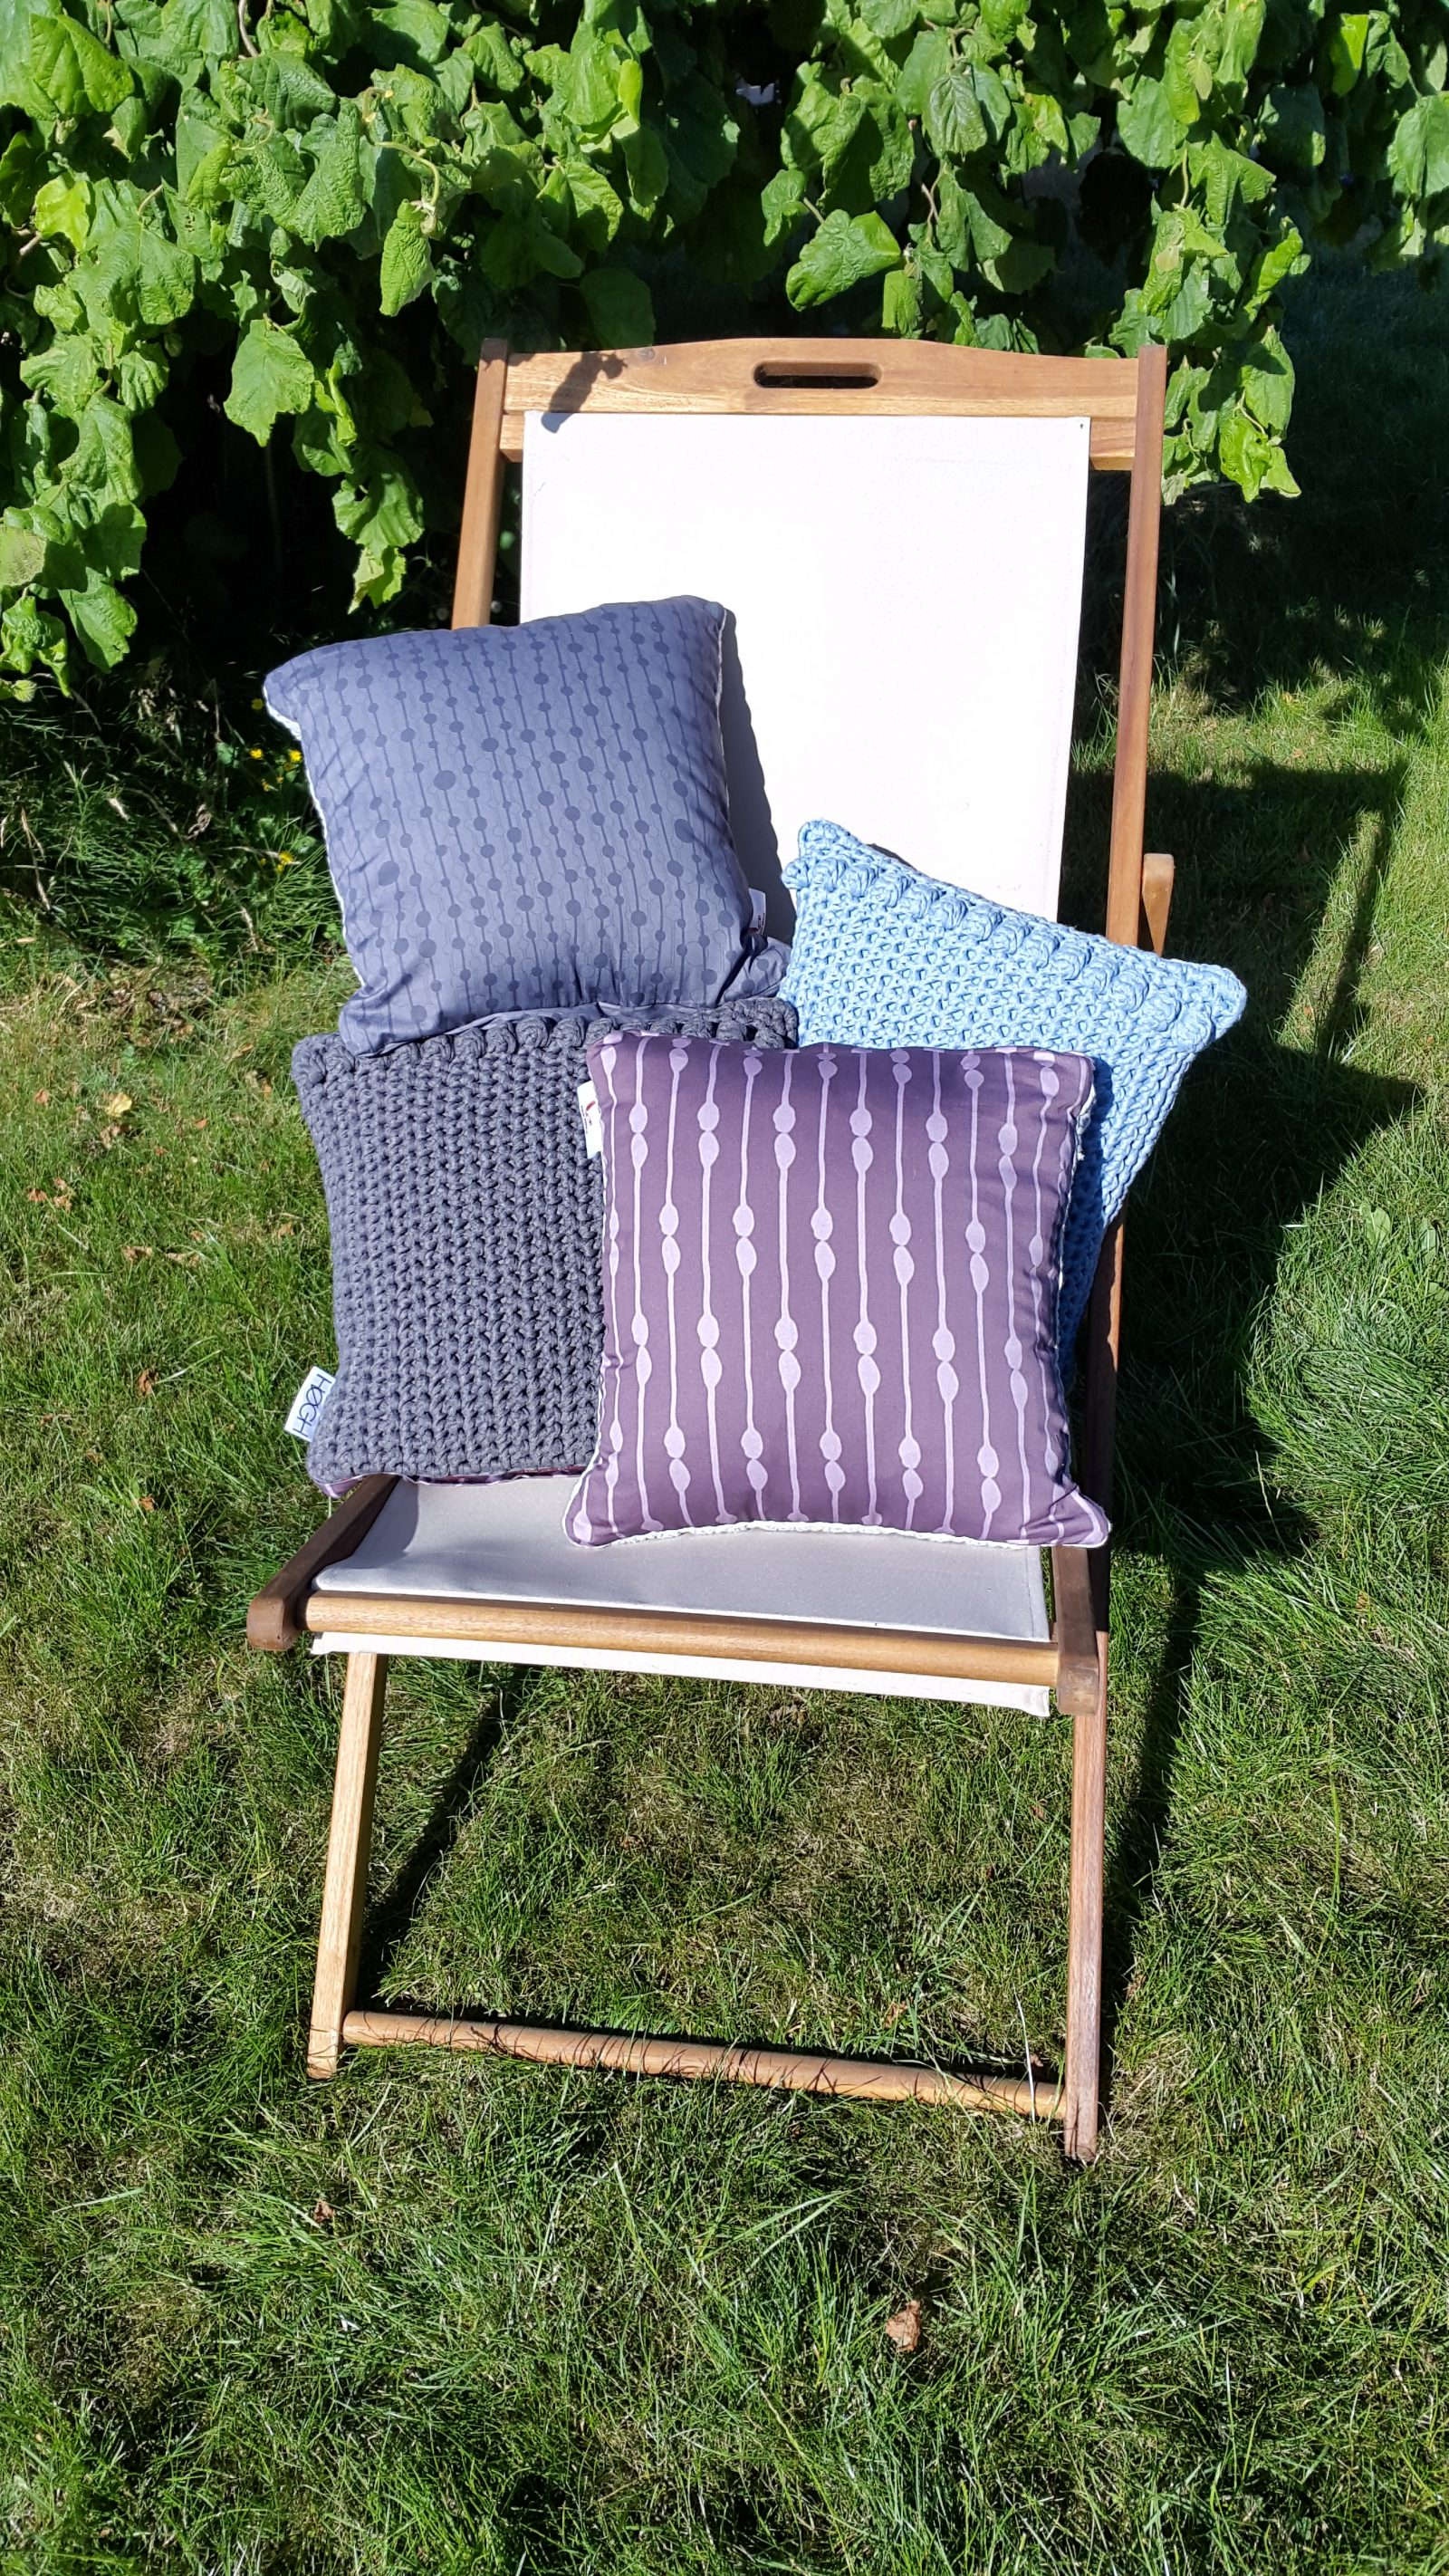 crocheted cushions in deckchair